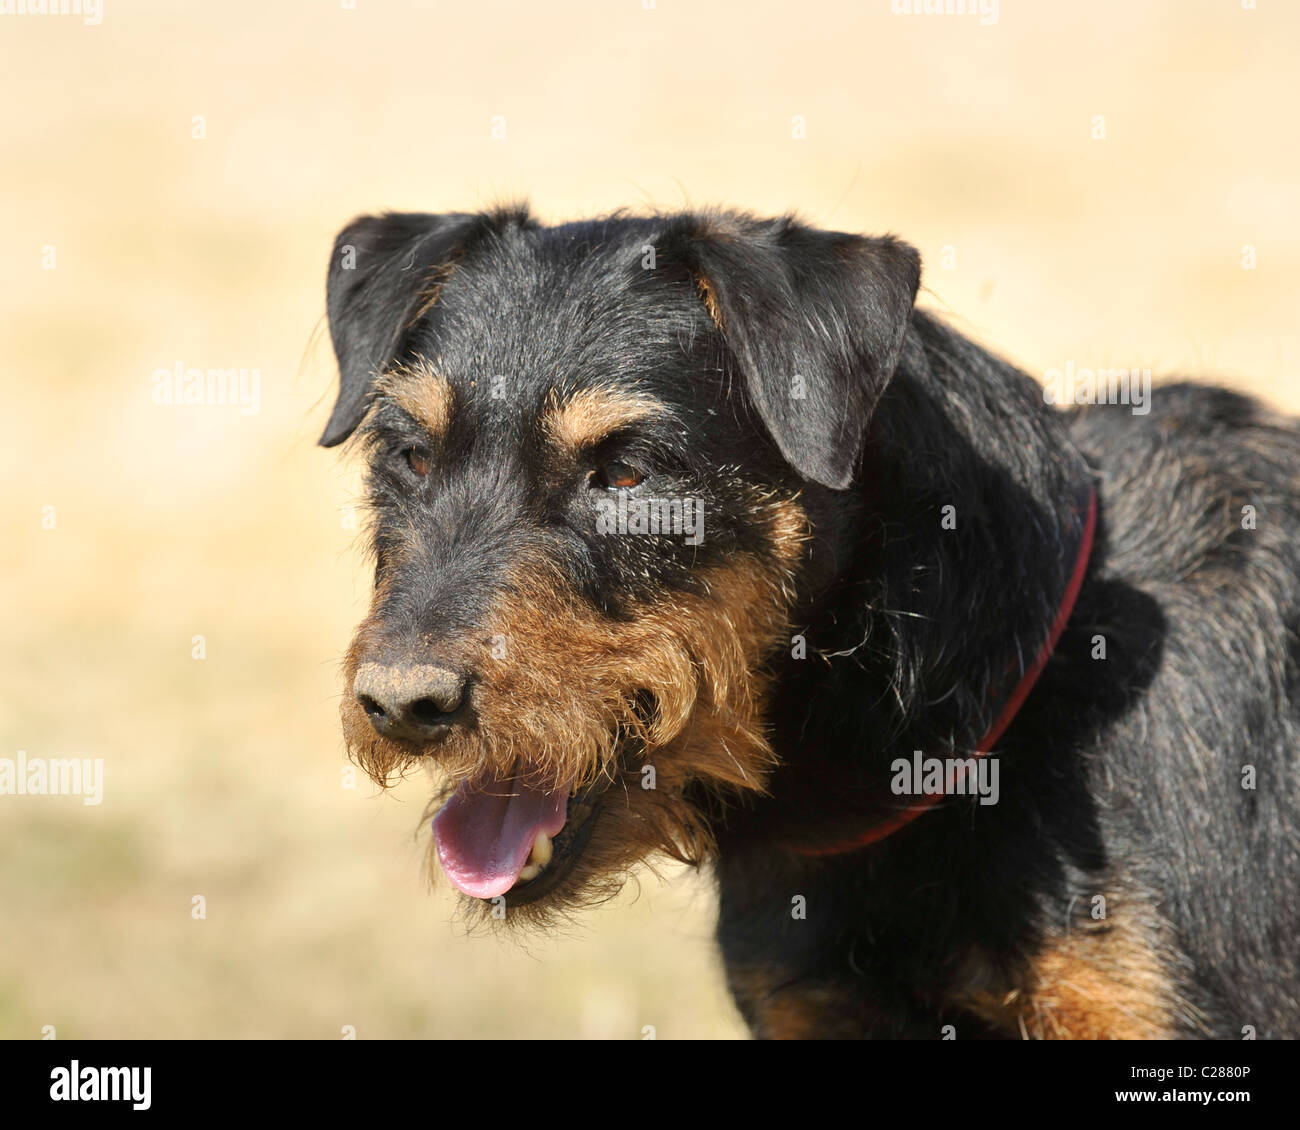 jagd terrier in germany - Stock Image